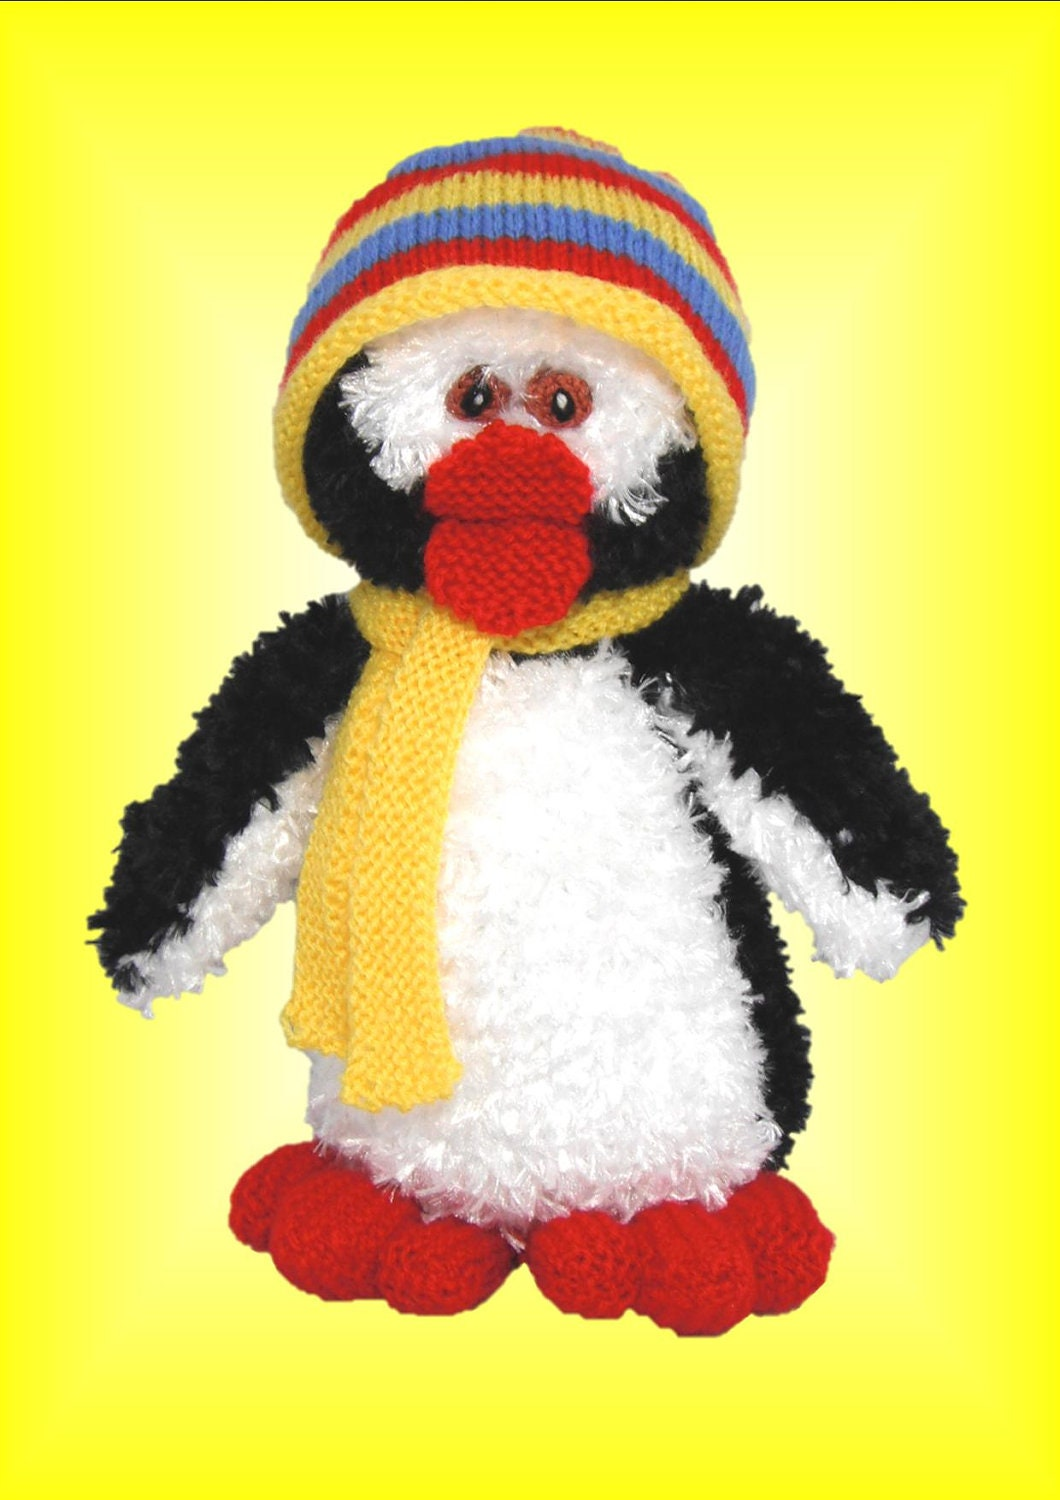 Pepe Penguin A New Original Toy Knitting pattern